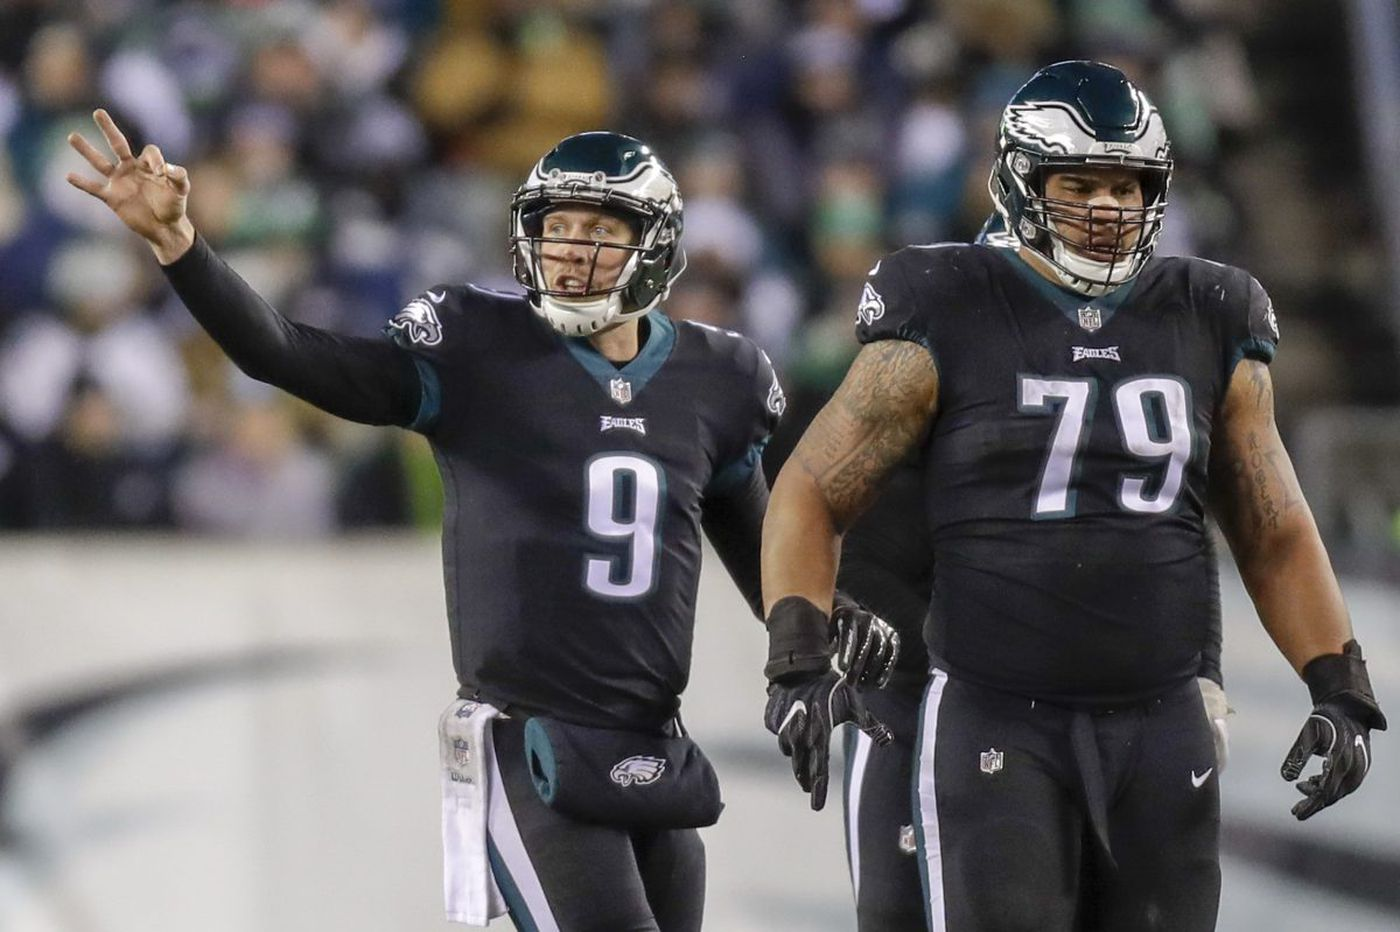 Eagles begin preparing for Week 17 vs. Cowboys, but how will they approach a game without postseason implications? | Early Birds